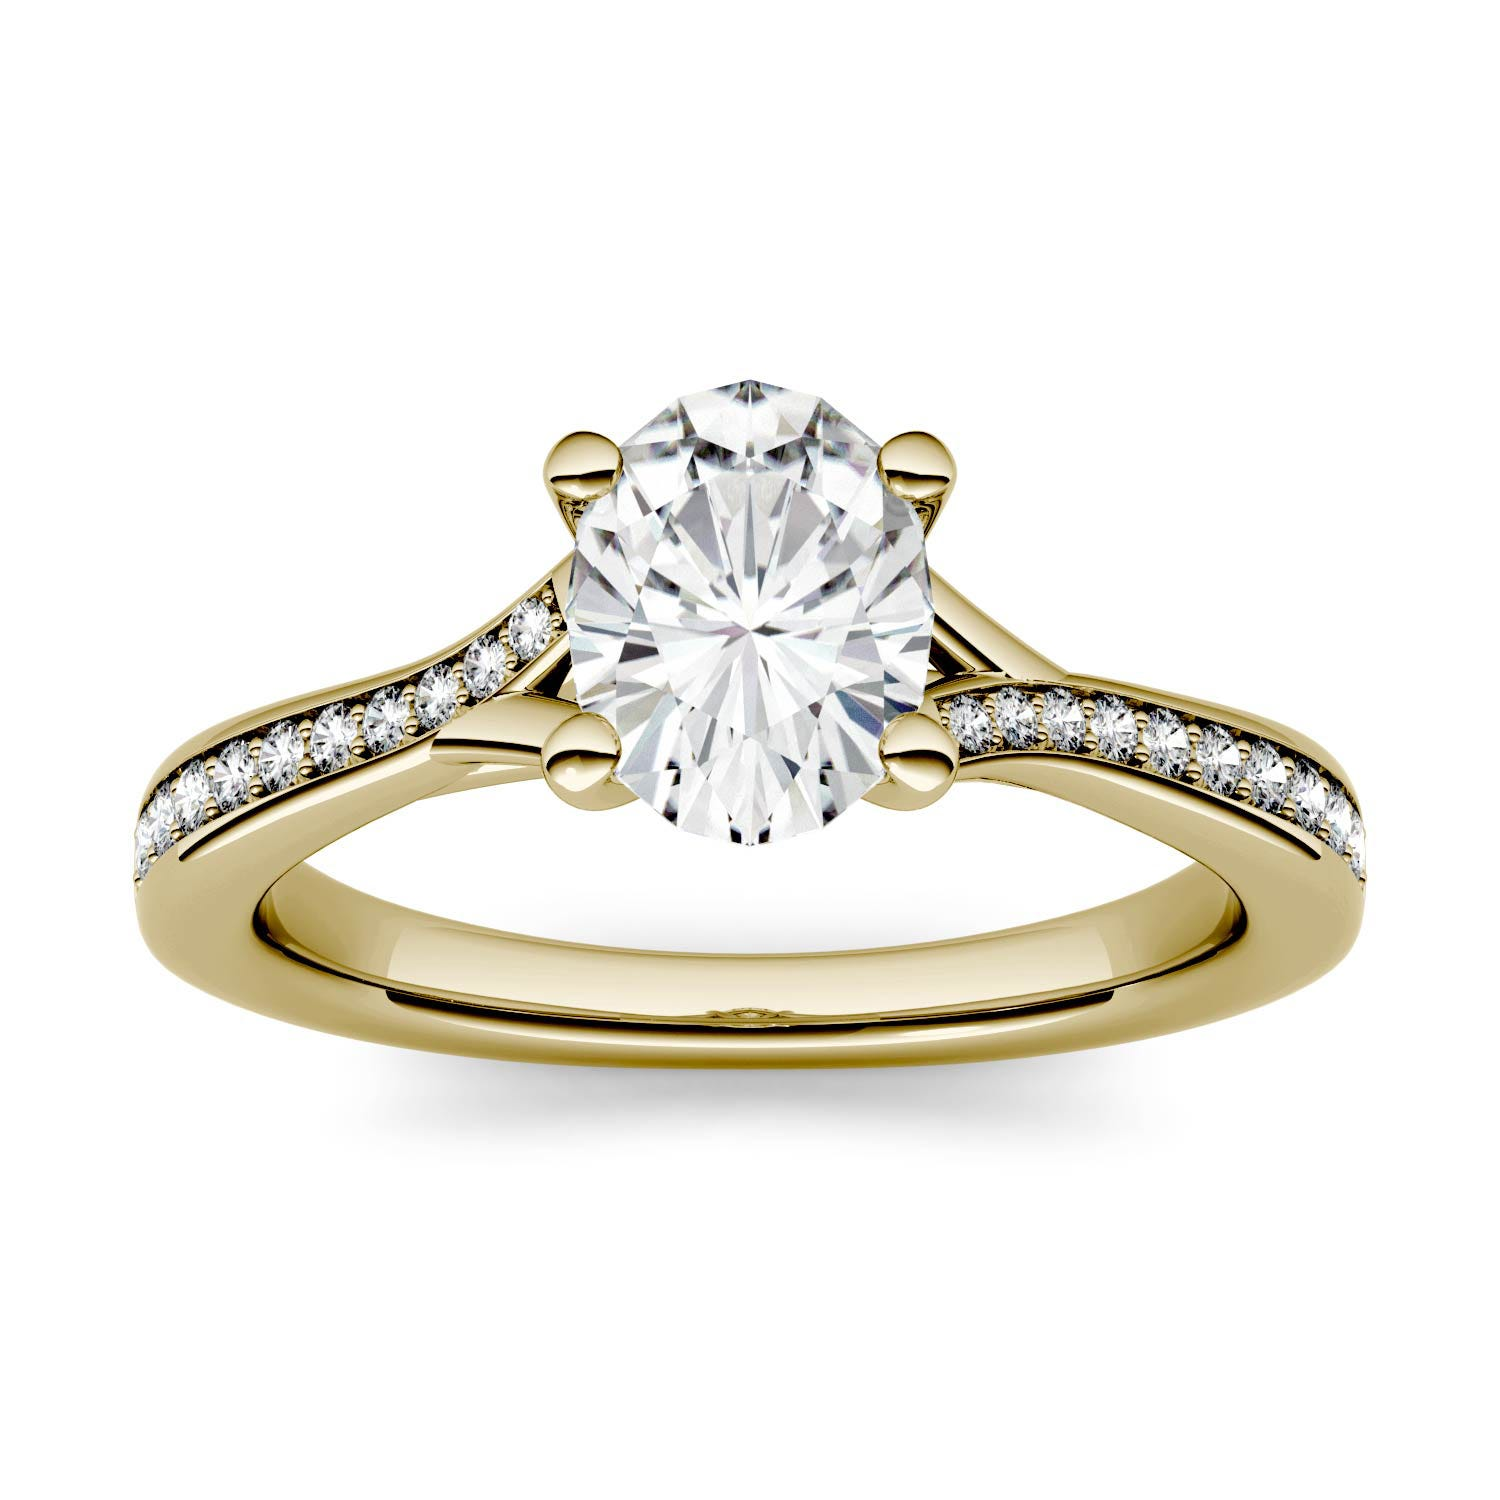 Oval 0.94cttw DEW Moissanite Solitaire with Side Accents Engagement Ring in 14K Yellow Gold 500114